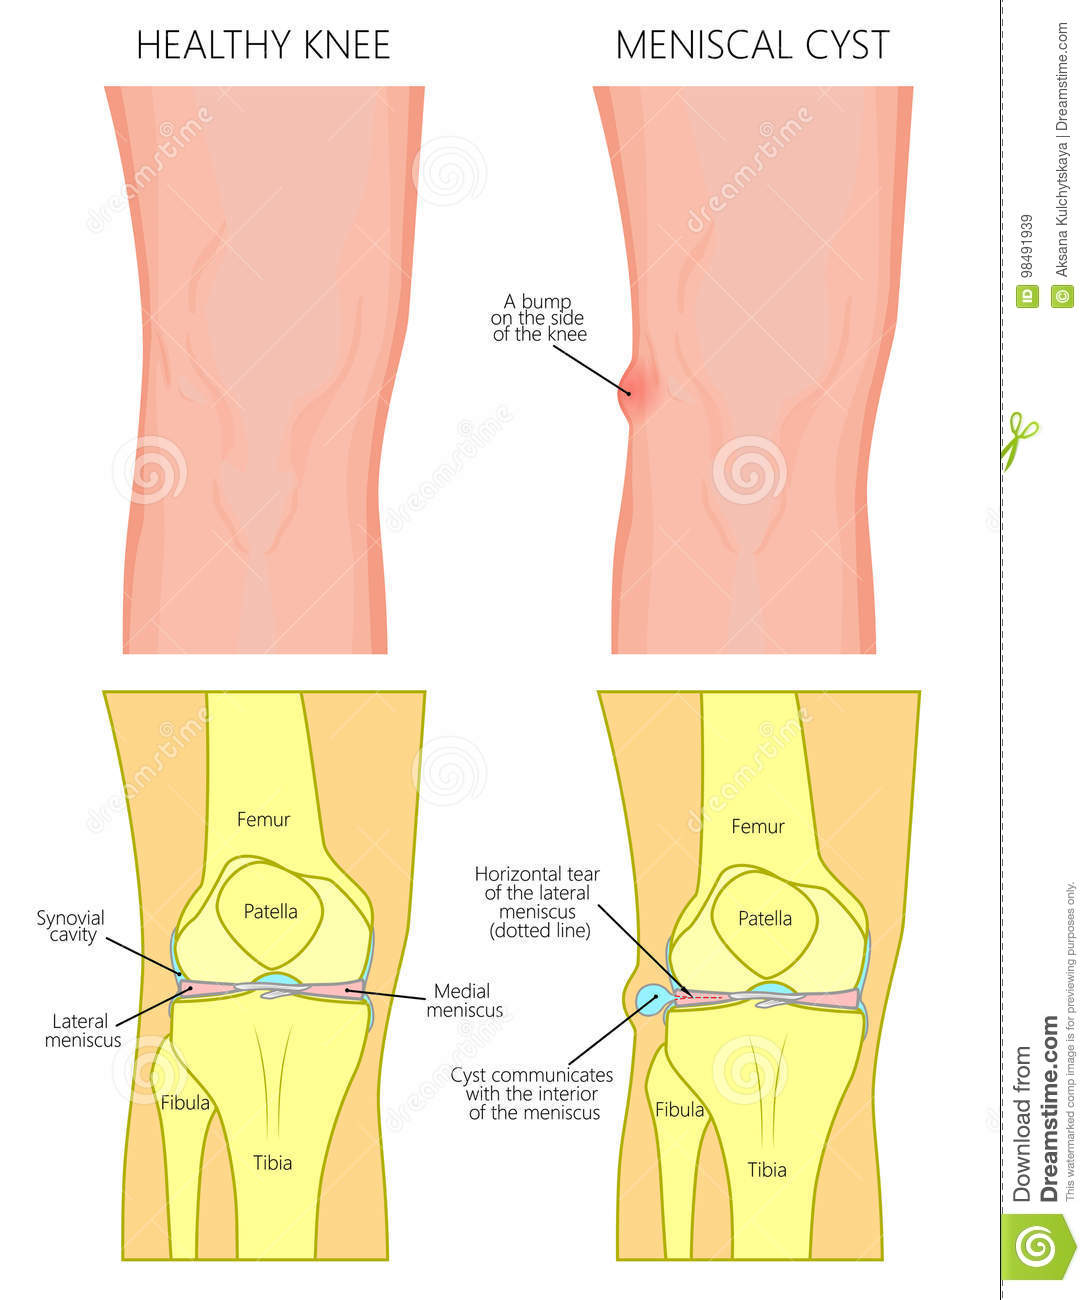 Meniscus _Meniscal Cyst Front View Stock Vector - Illustration of ...